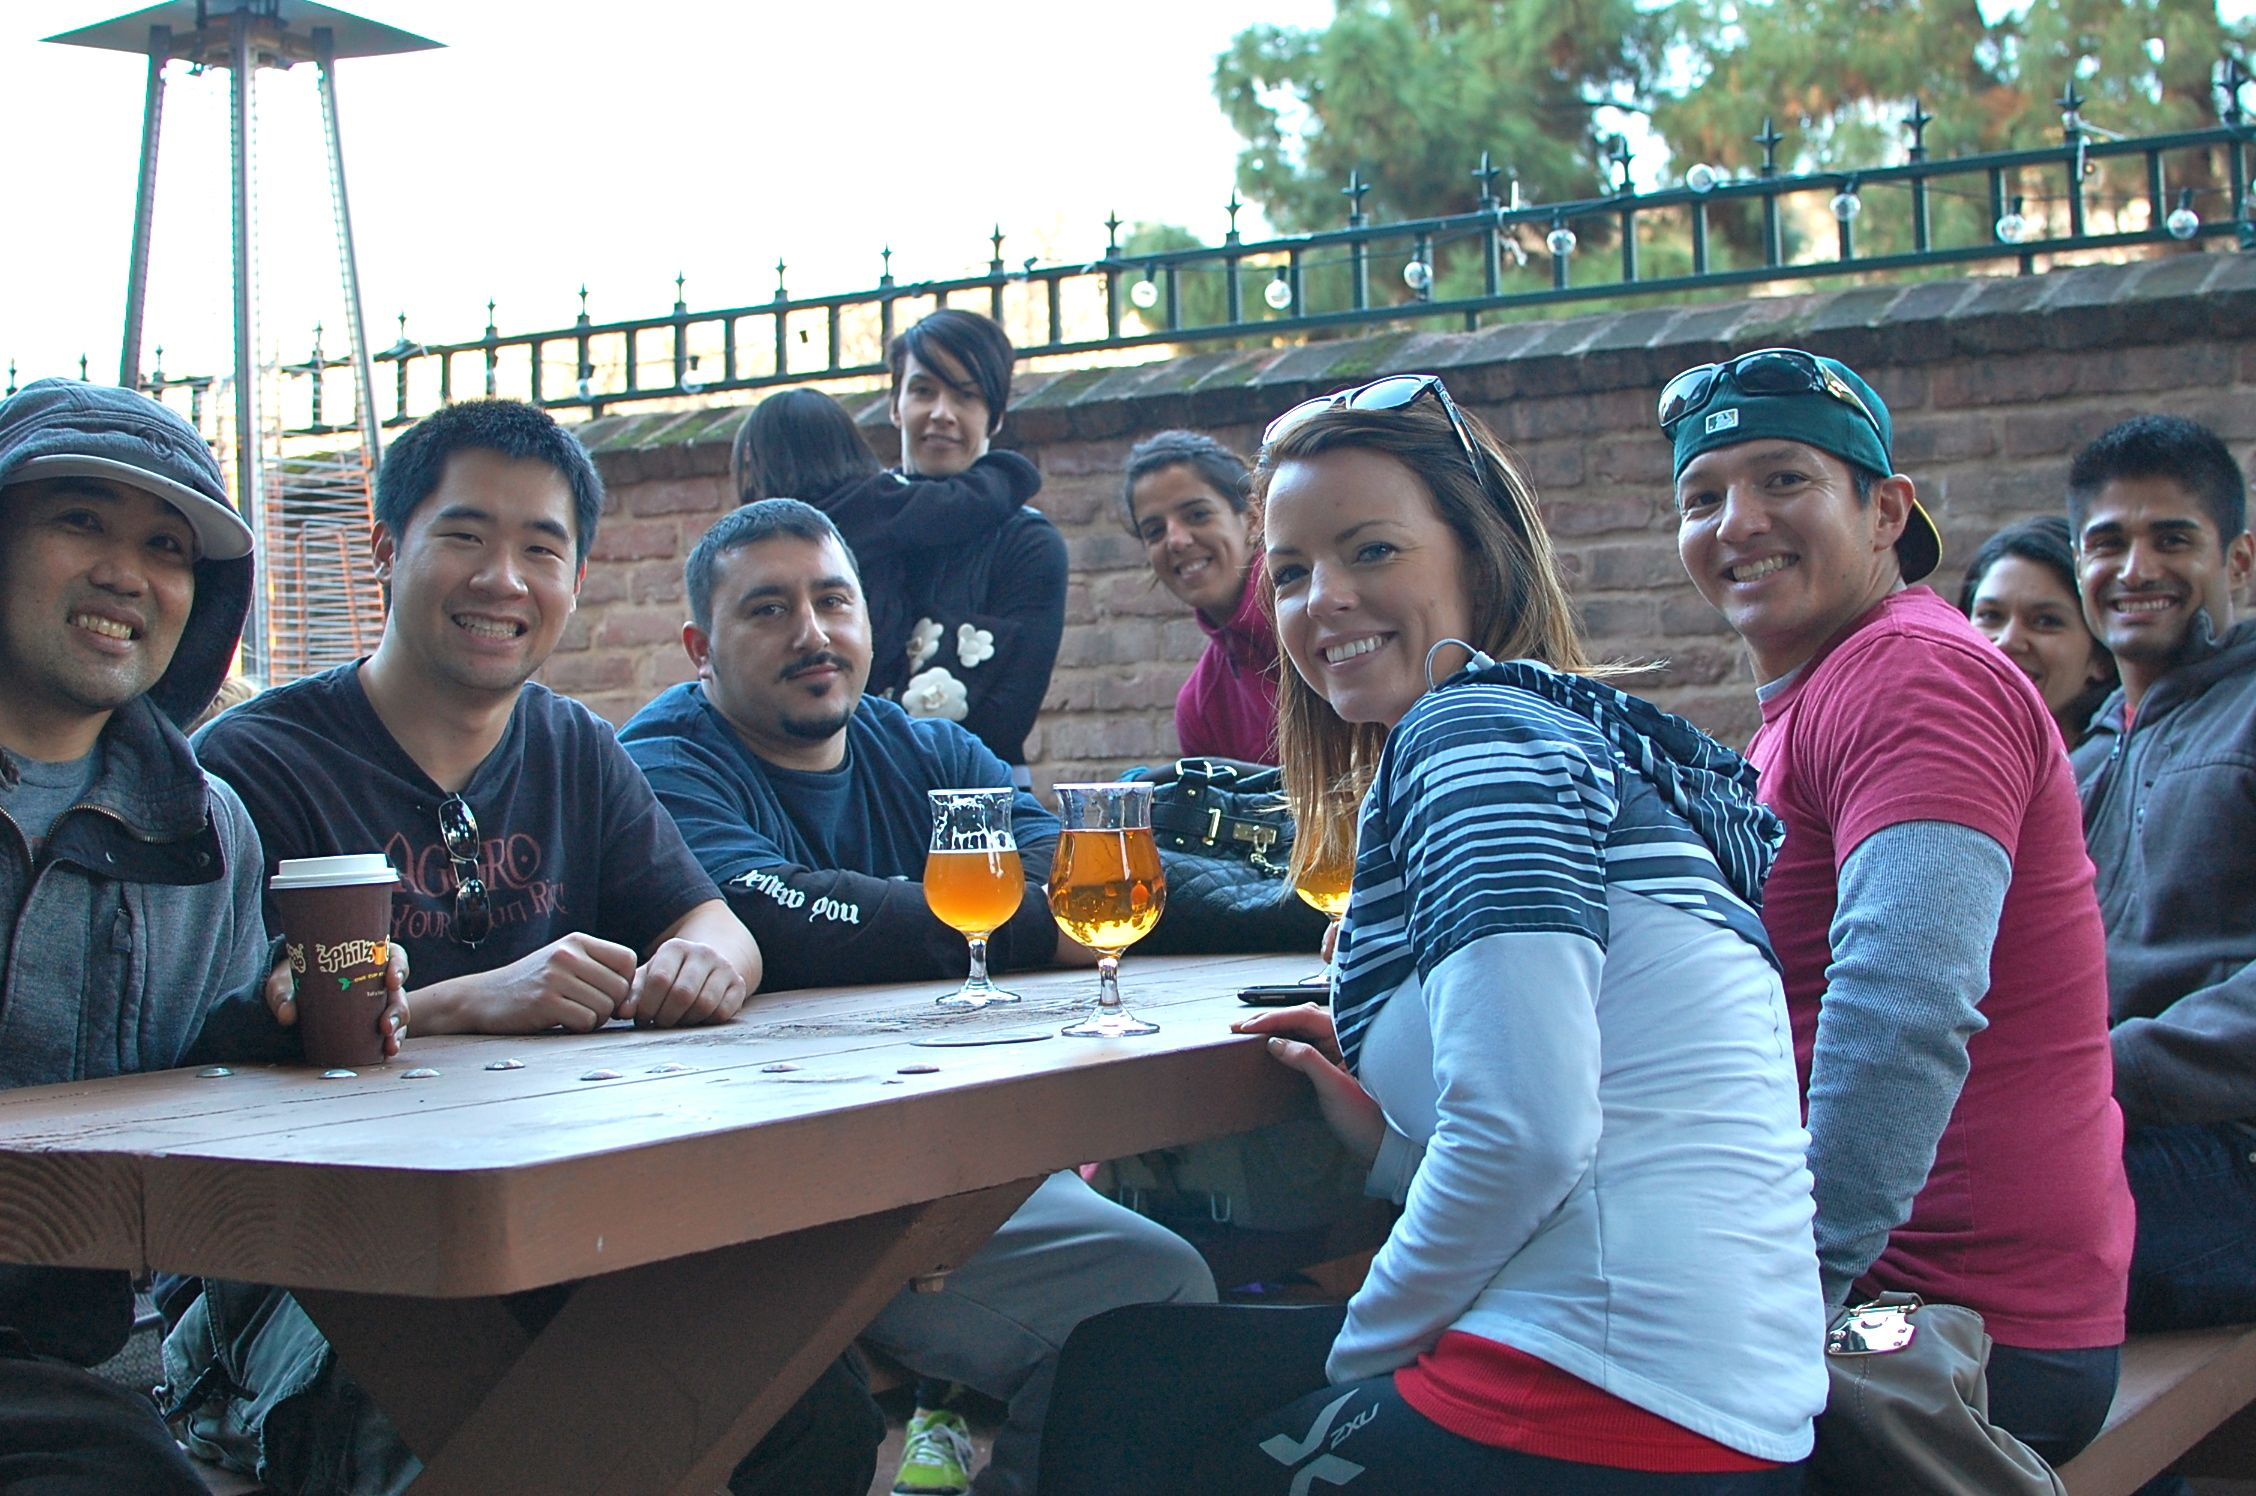 Meet Original Gravity Public House. It is one of our new chill out spots in Downtown San Jose.